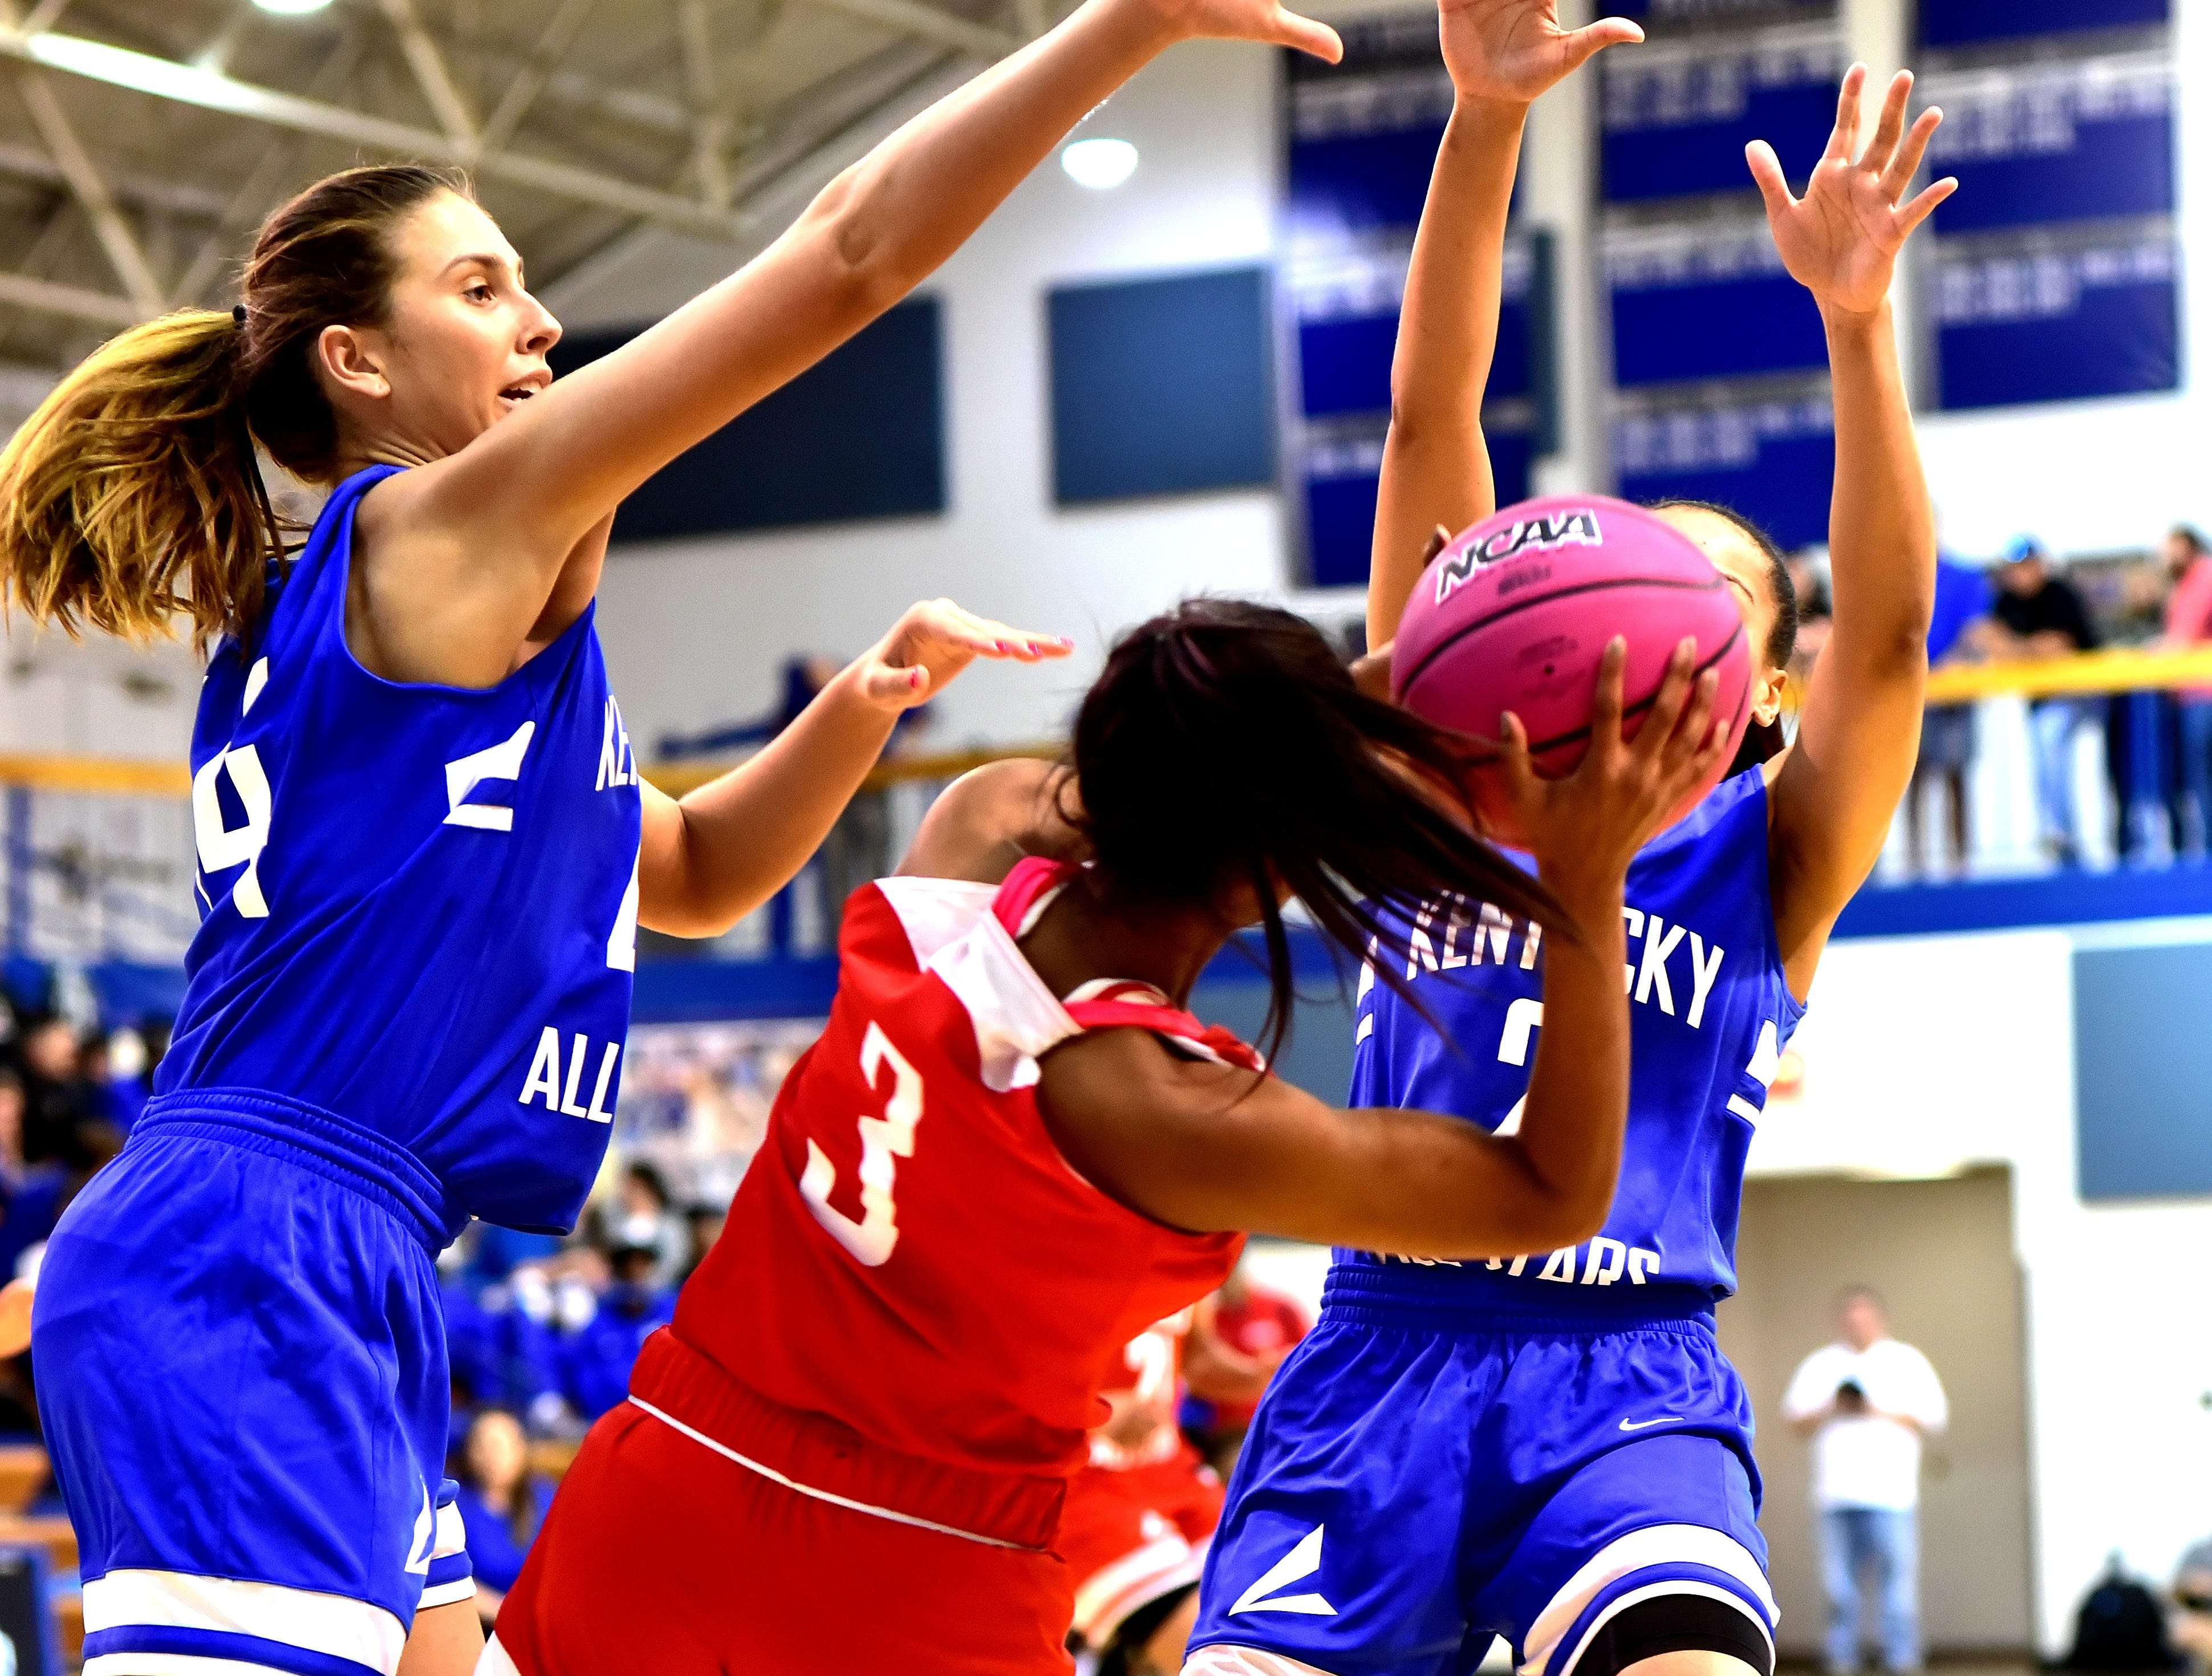 Lakota West's Bryana Henderson (3) is caught in defensive traffic for the Ohio girls team at the 28th Annual Ohio-Kentucky All Star Games played at Thomas More University, April 13, 2019